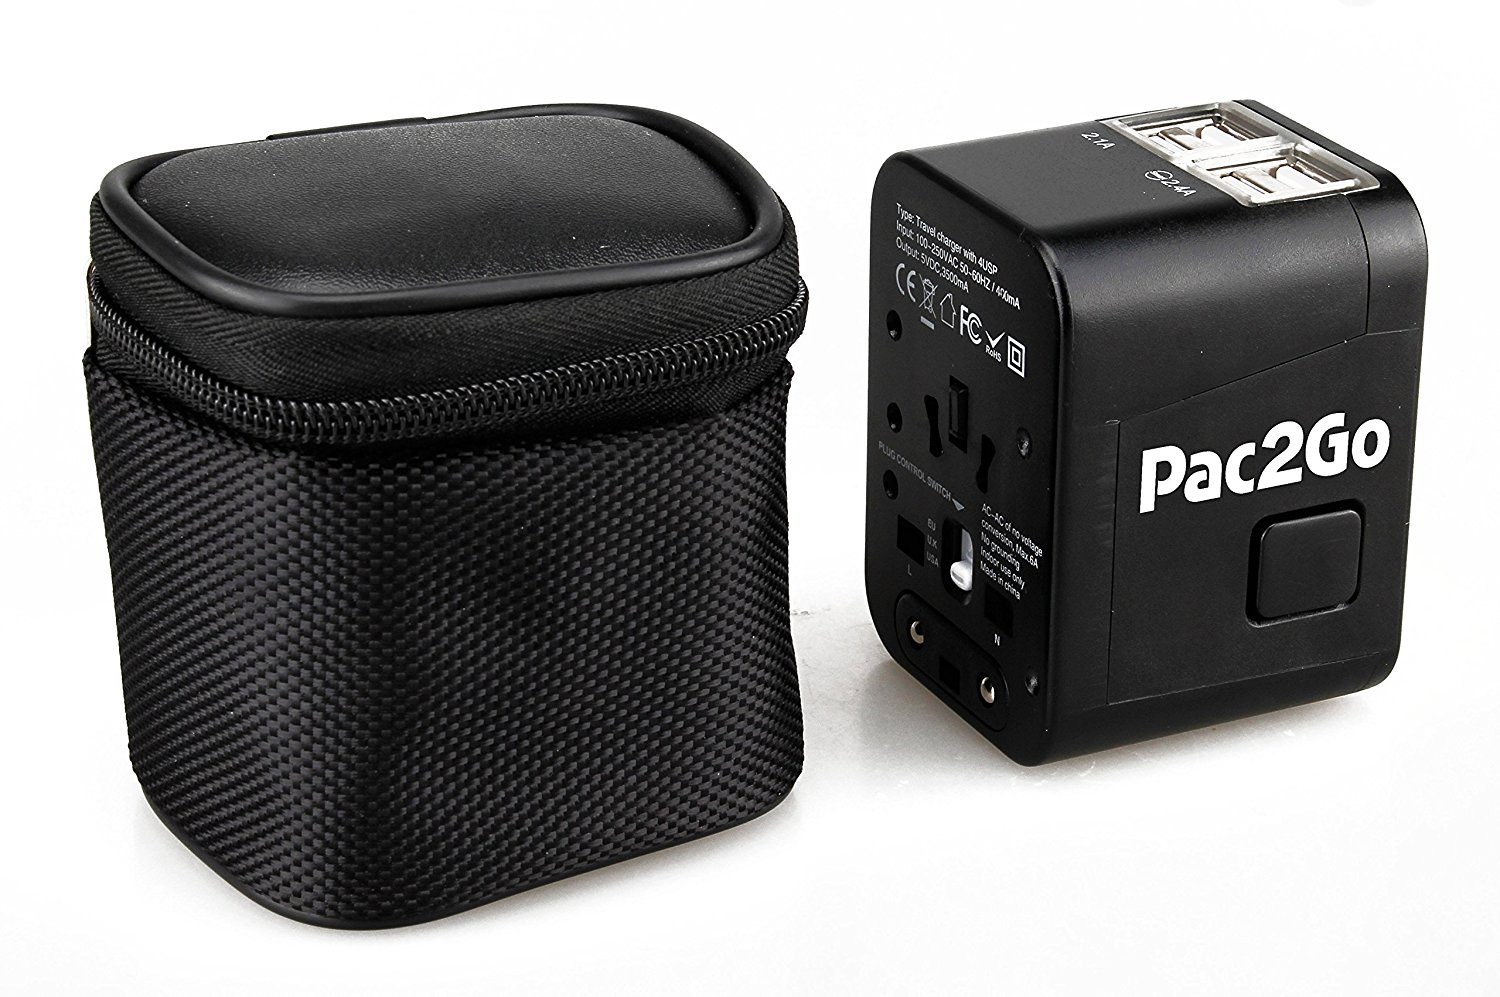 Pac2Go Universal Travel Adapter with Quad USB